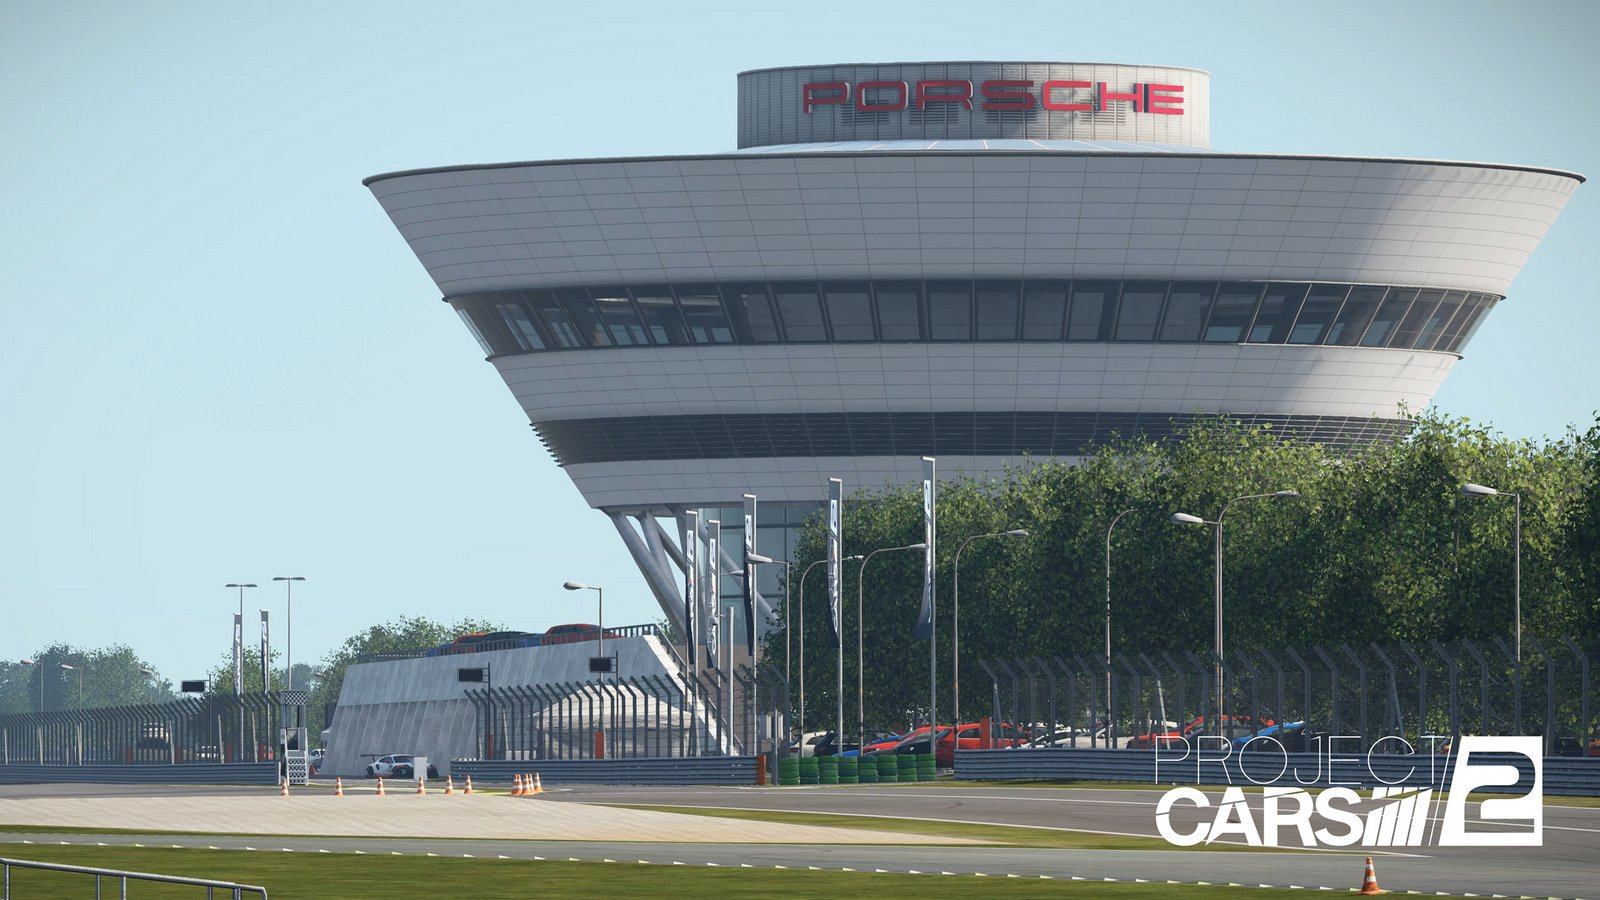 Project CARS 2 Porsche on road circuit test track Leipzig preview